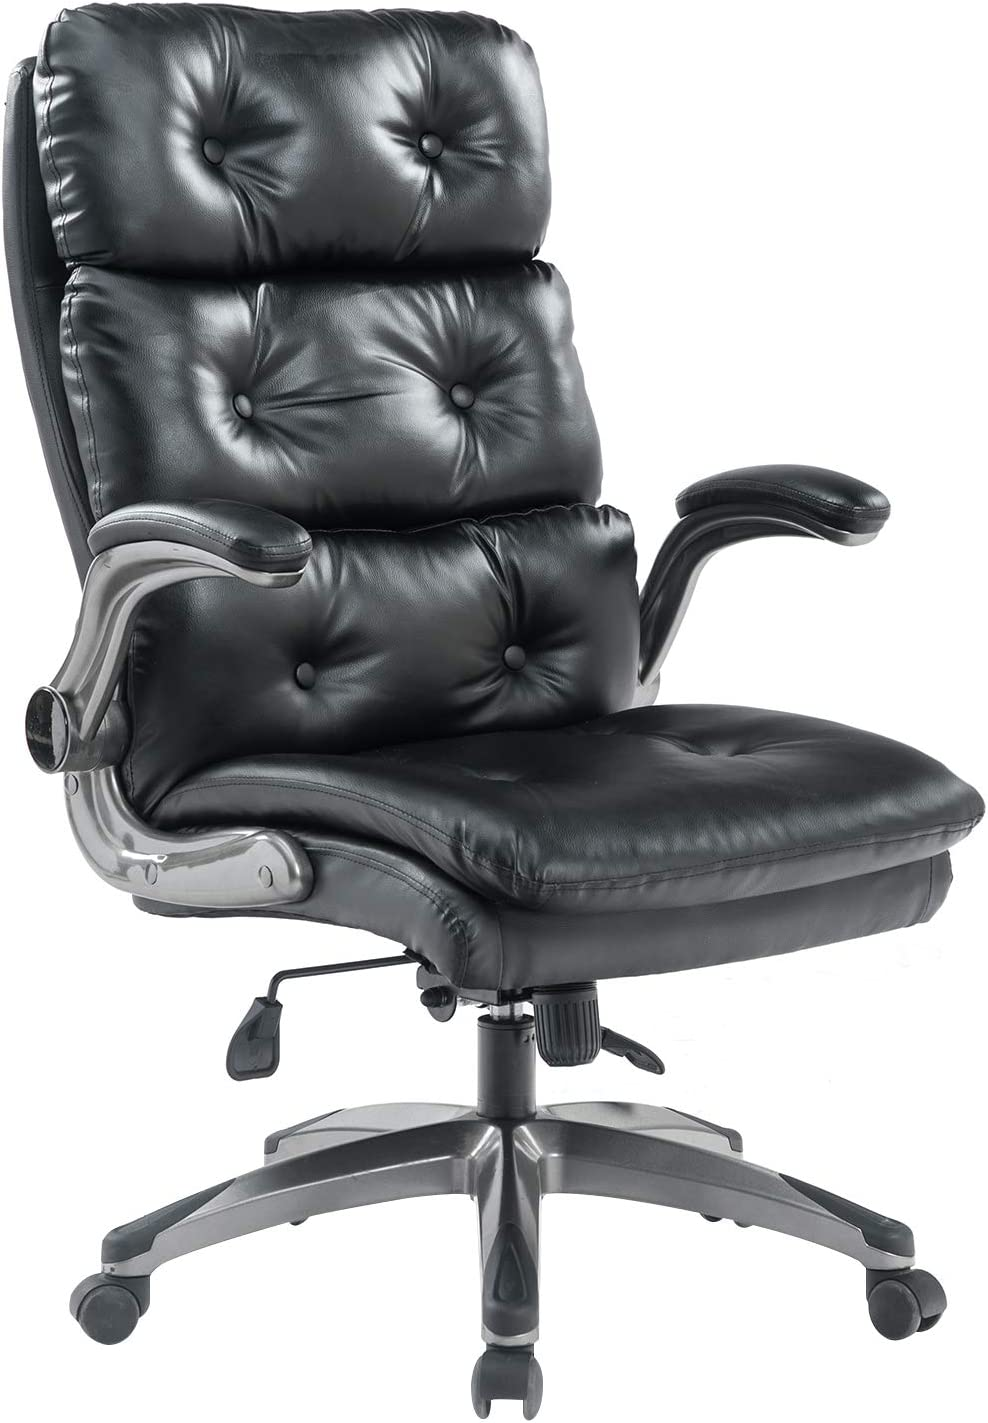 BOSMILLER Office Chair High Back Leather Executive Computer Desk Chair - Adjustable Tilt Angle and Flip-up Arms Swivel Chair Thick Padding for Comfort and Ergonomic Design for Lumbar Support, Black